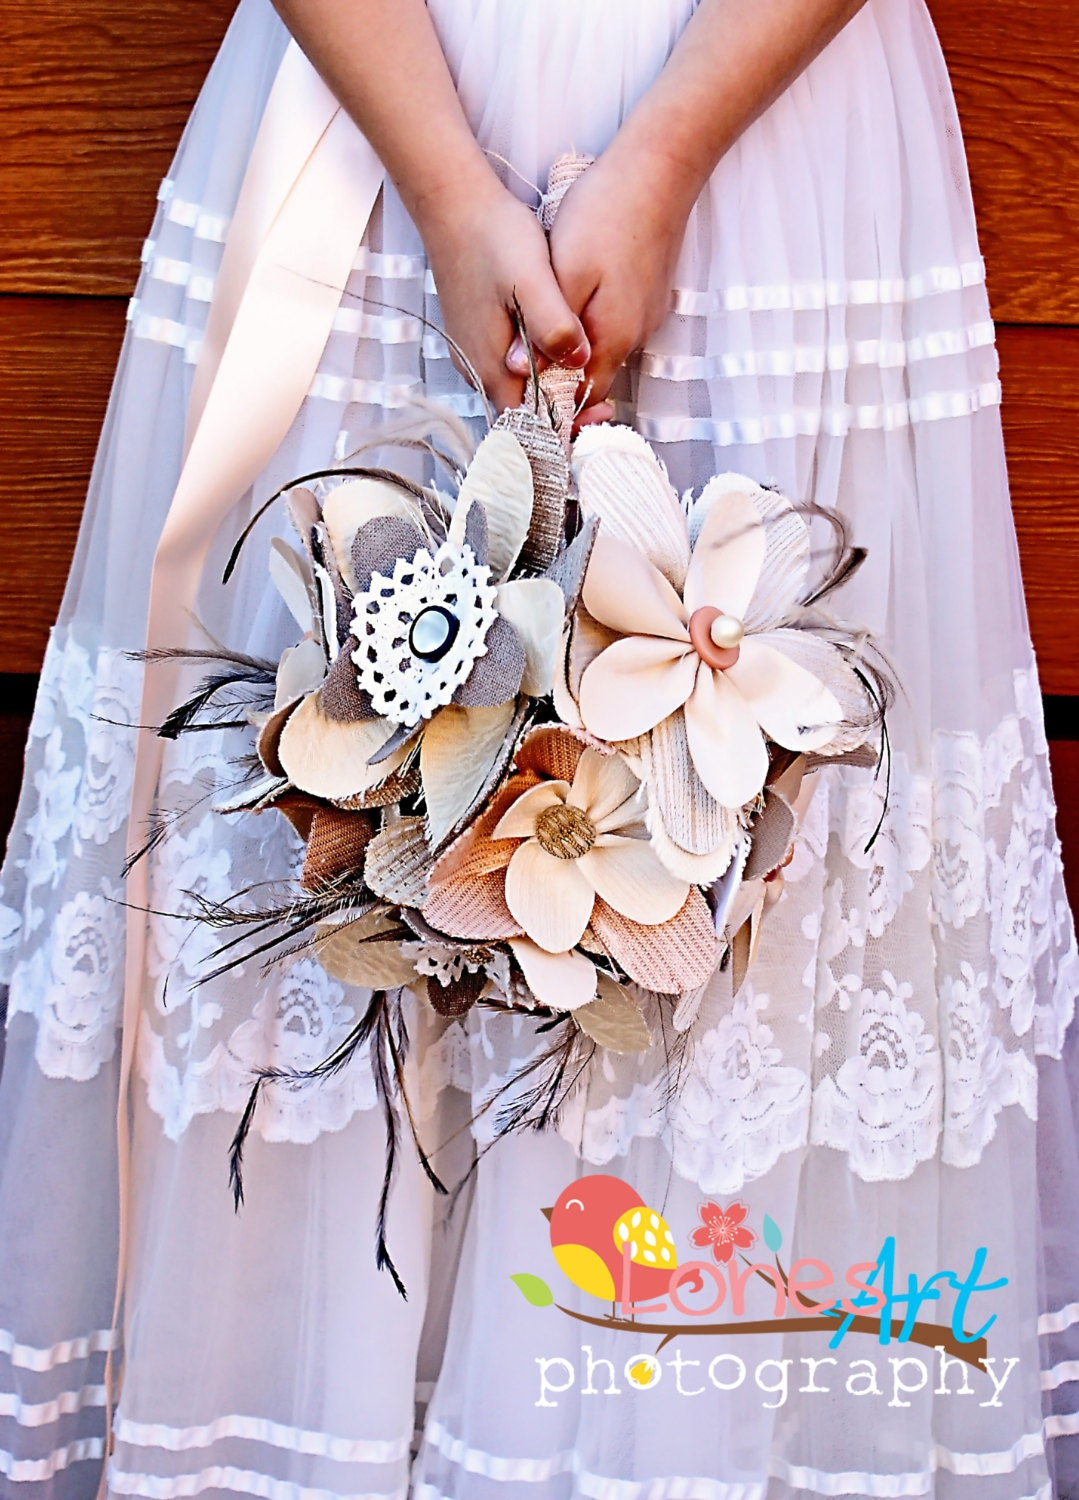 Button Bridal Bouquet Etsy : Fabric bridal bouquet wedding by designsofwhitewillow